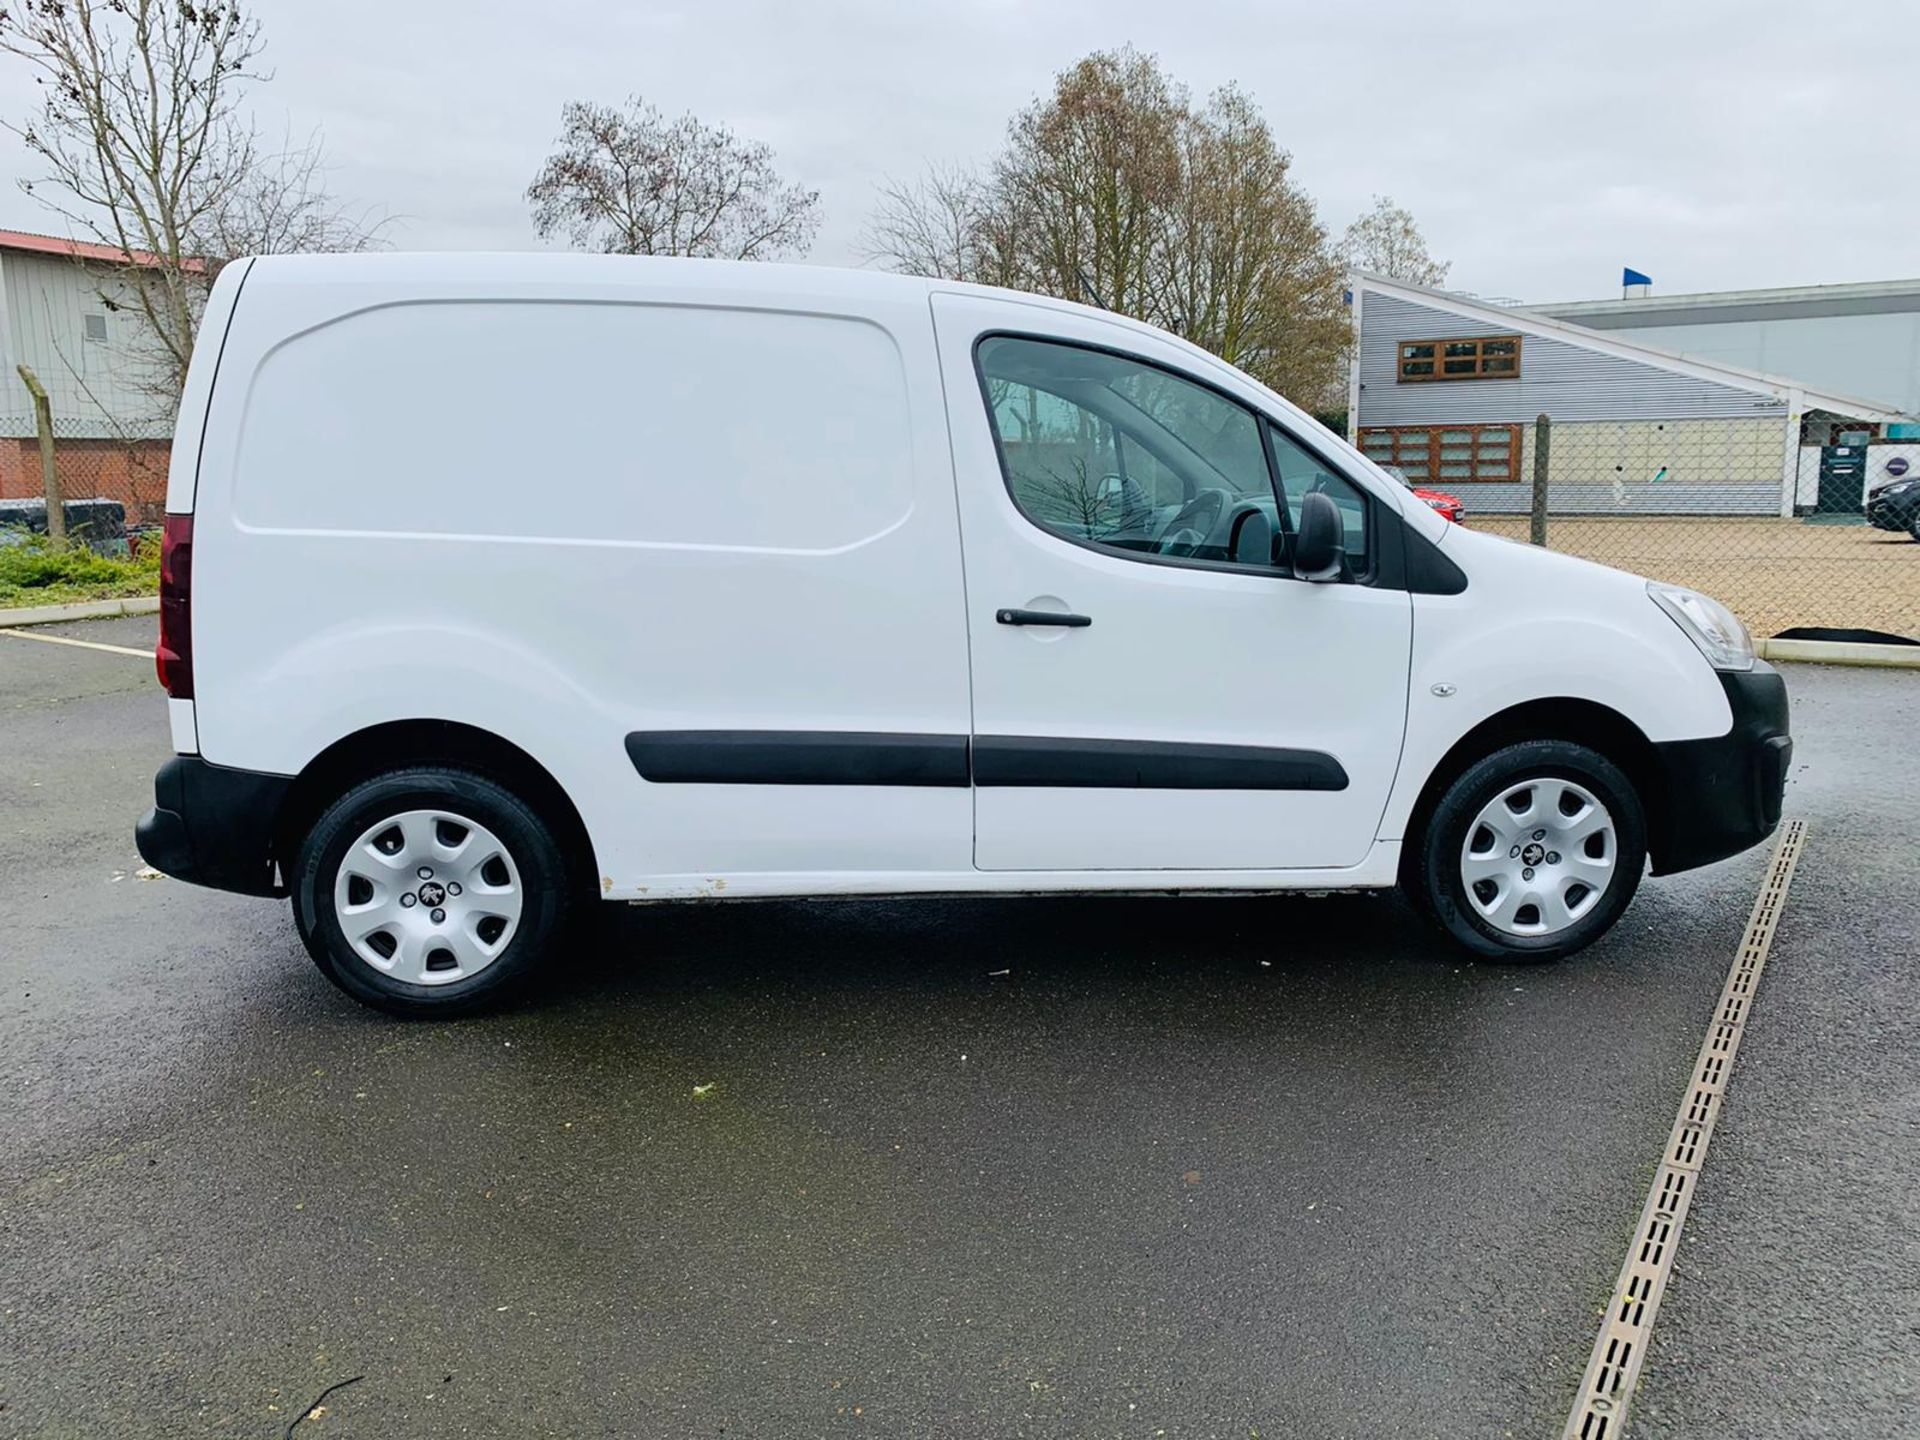 (RESERVE MET) Peugeot Partner 1.6 HDI Professional - 2017 Model - Air Con - Service History - Image 6 of 22